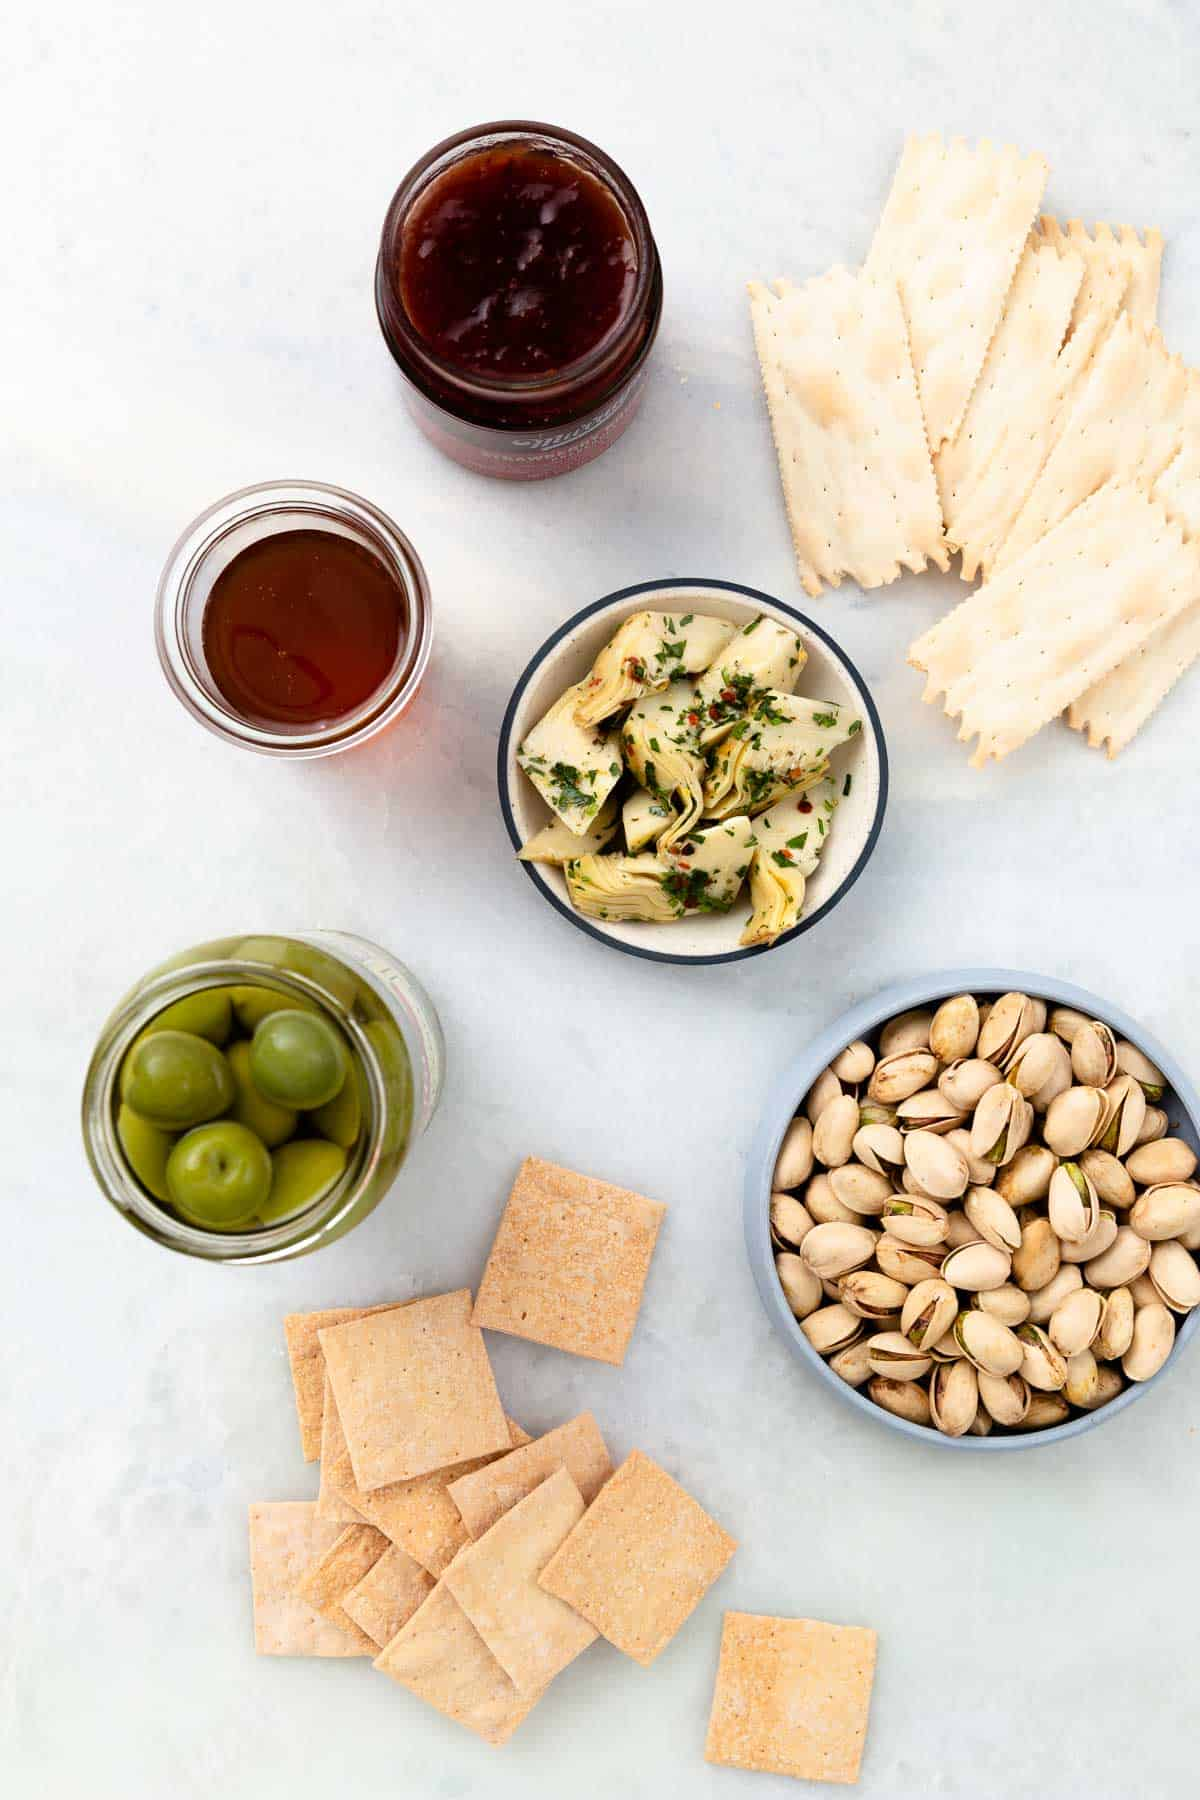 small bowls and jars filled with nuts, green olives, and jam with crackers on the side